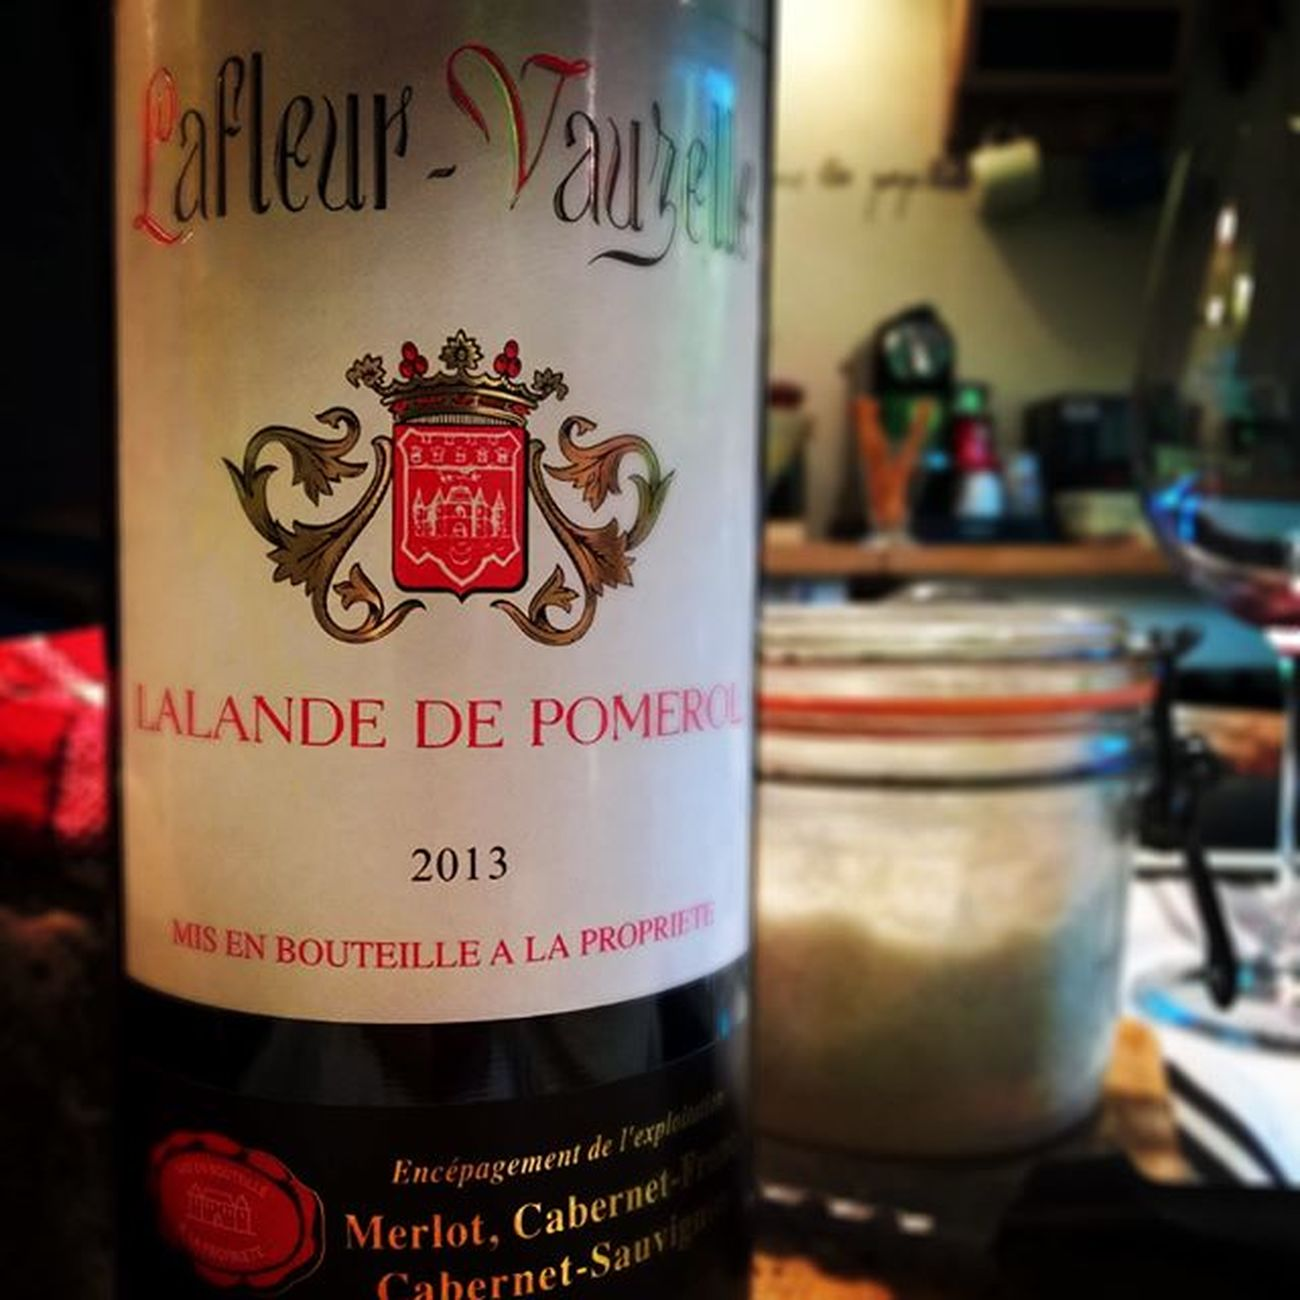 Bien hydrater son corps. 👆 Wino collection Vin 🍷 Rouge Lalande Pomerol Instawine Instadrink